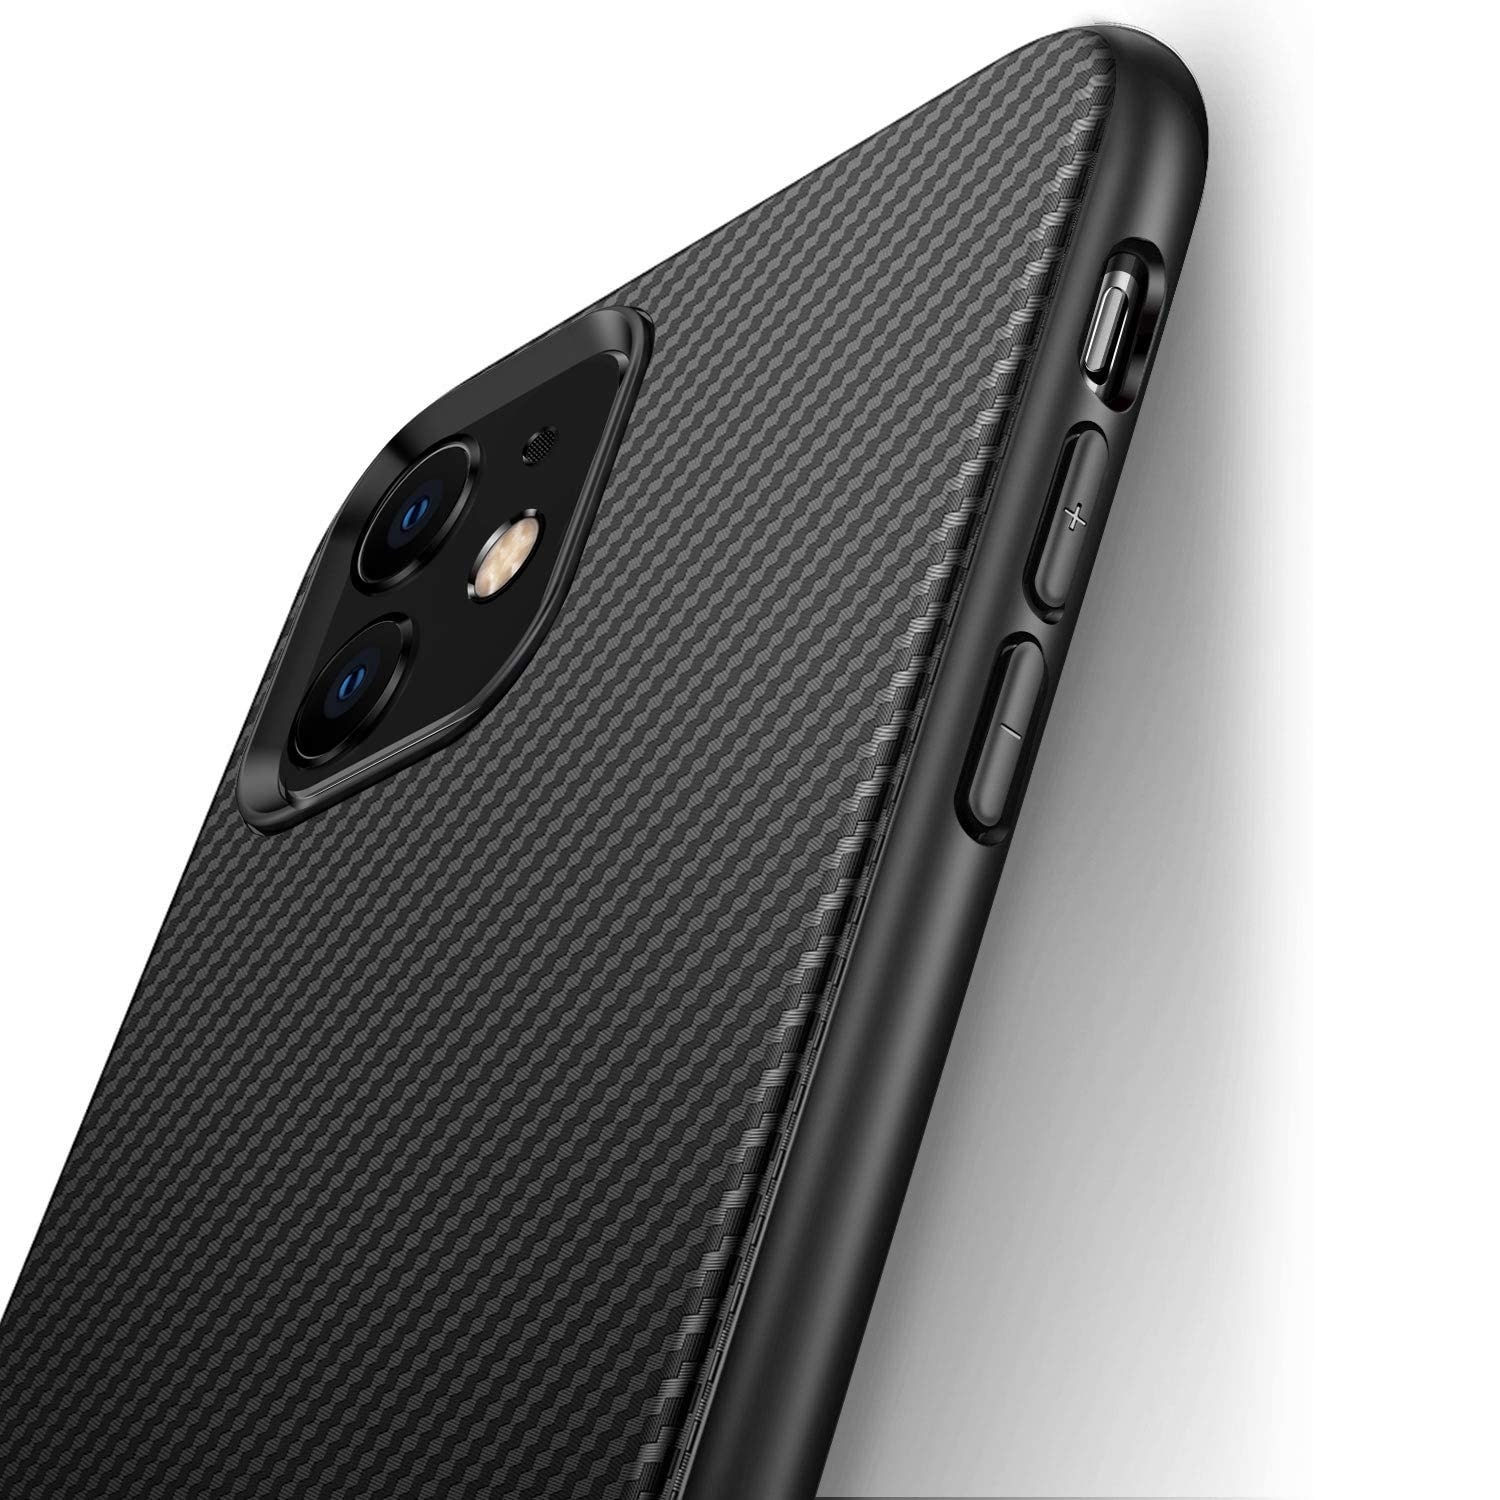 Luxury Carbon Fiber Silicone Case for iPhone 12 mini 11 Pro XR Xs Max Protective Soft Cover for iPho